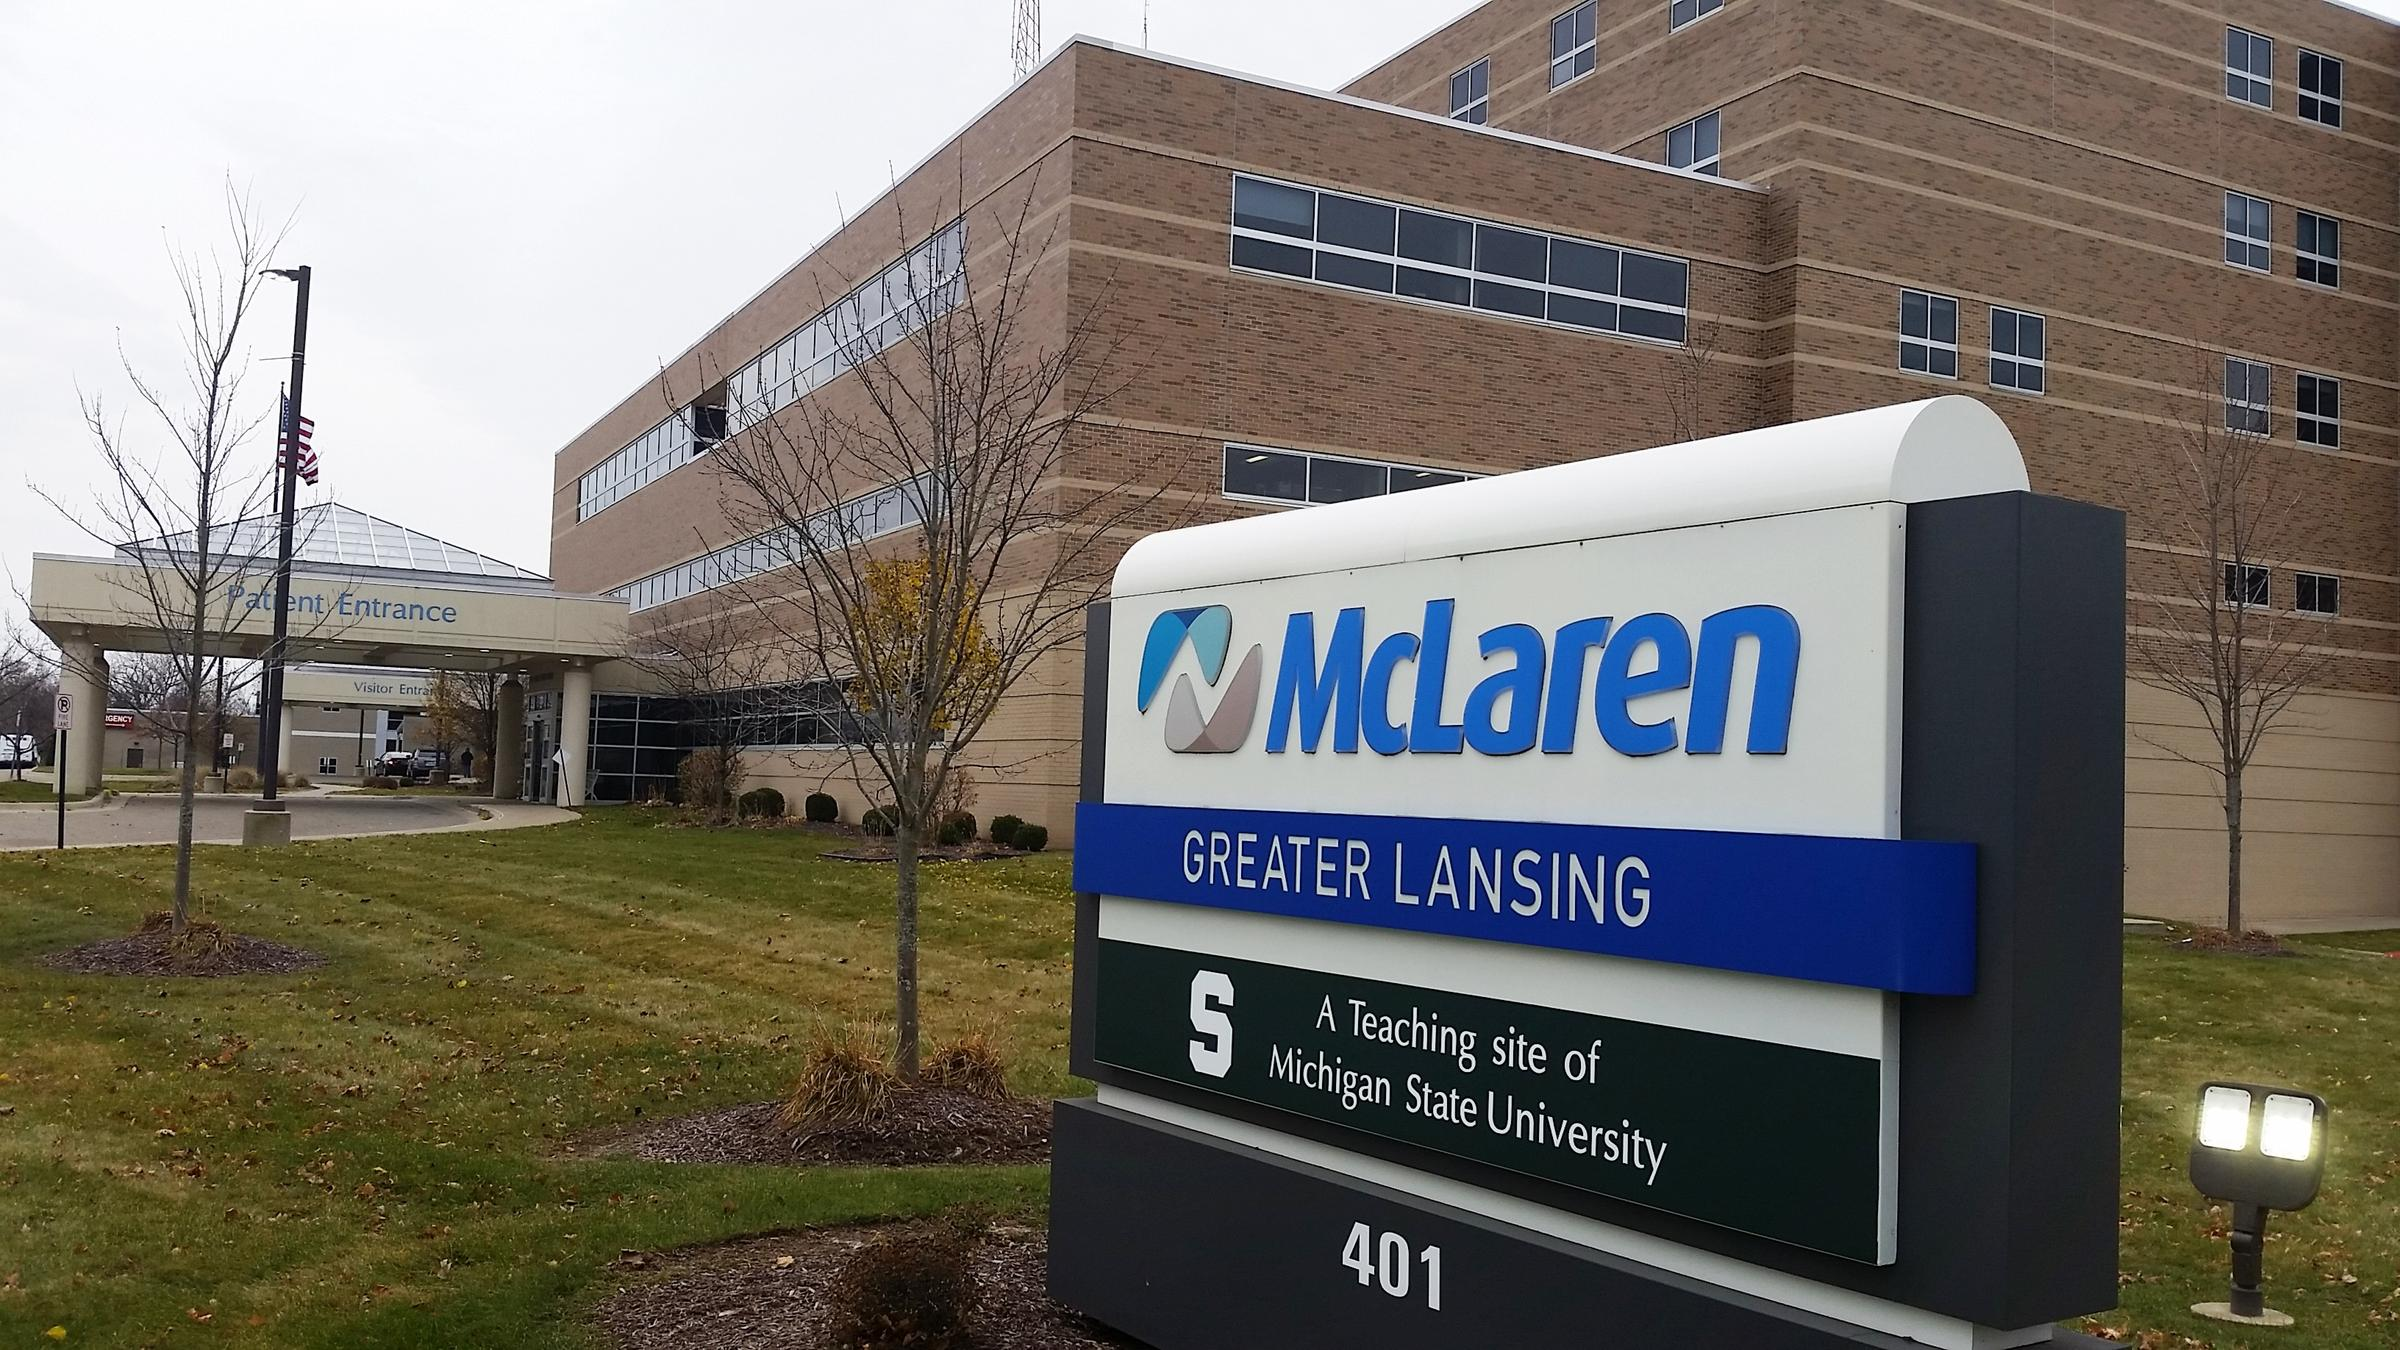 McLaren Health Care Will Collaborate With Michigan State University In A  New 240 Bed Hospital At The Universityu0027s Corporate Research Park Near U.S.  127.